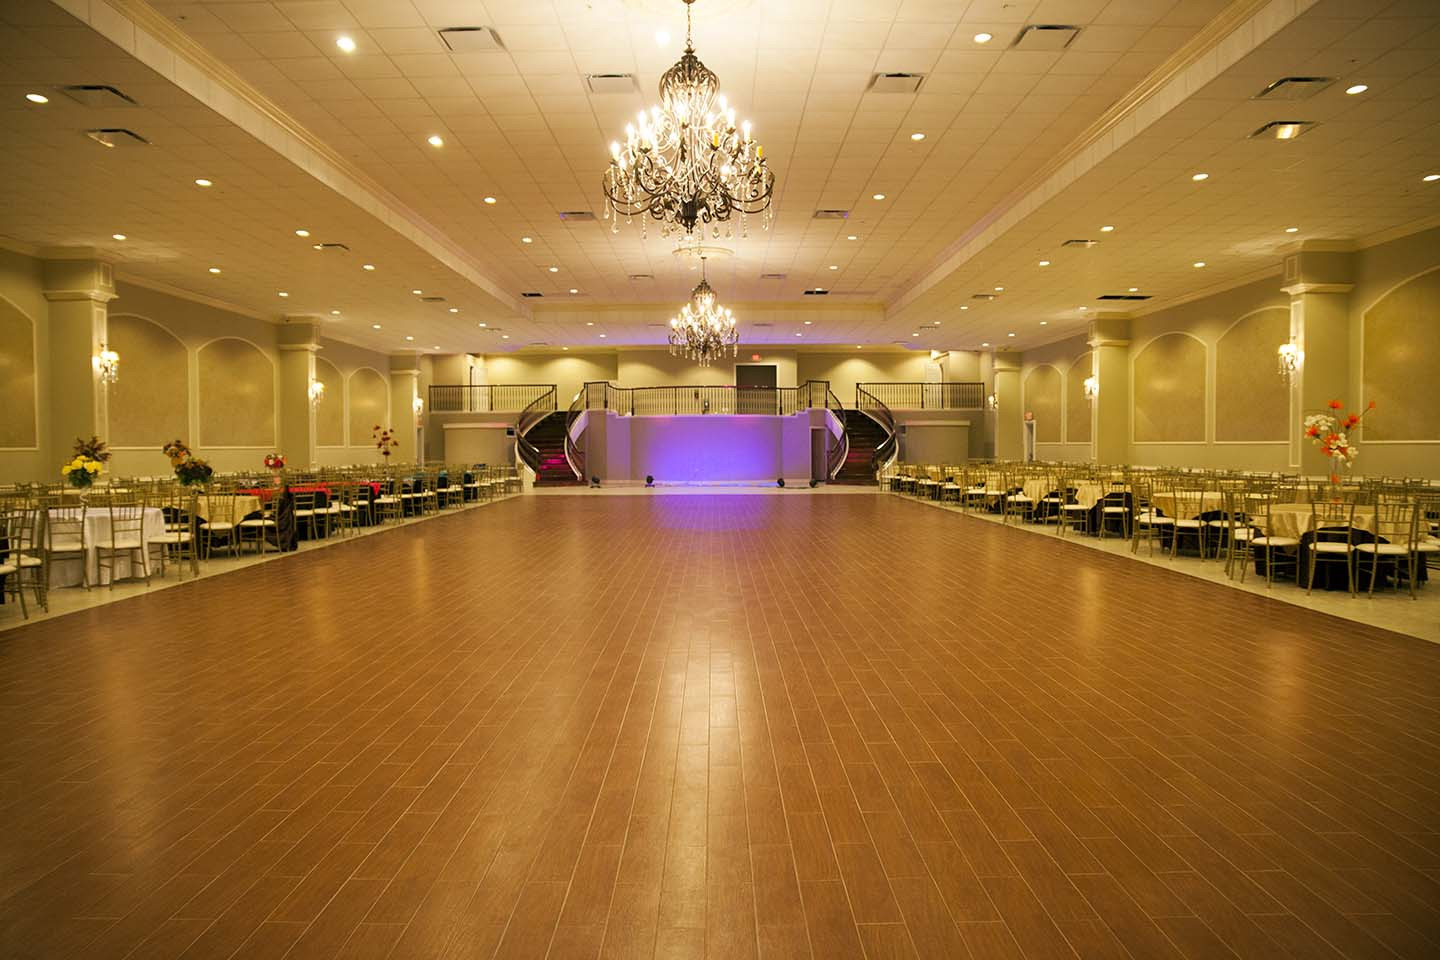 Birthday Party Halls For Rent  How to Plan a Quince Anos Party